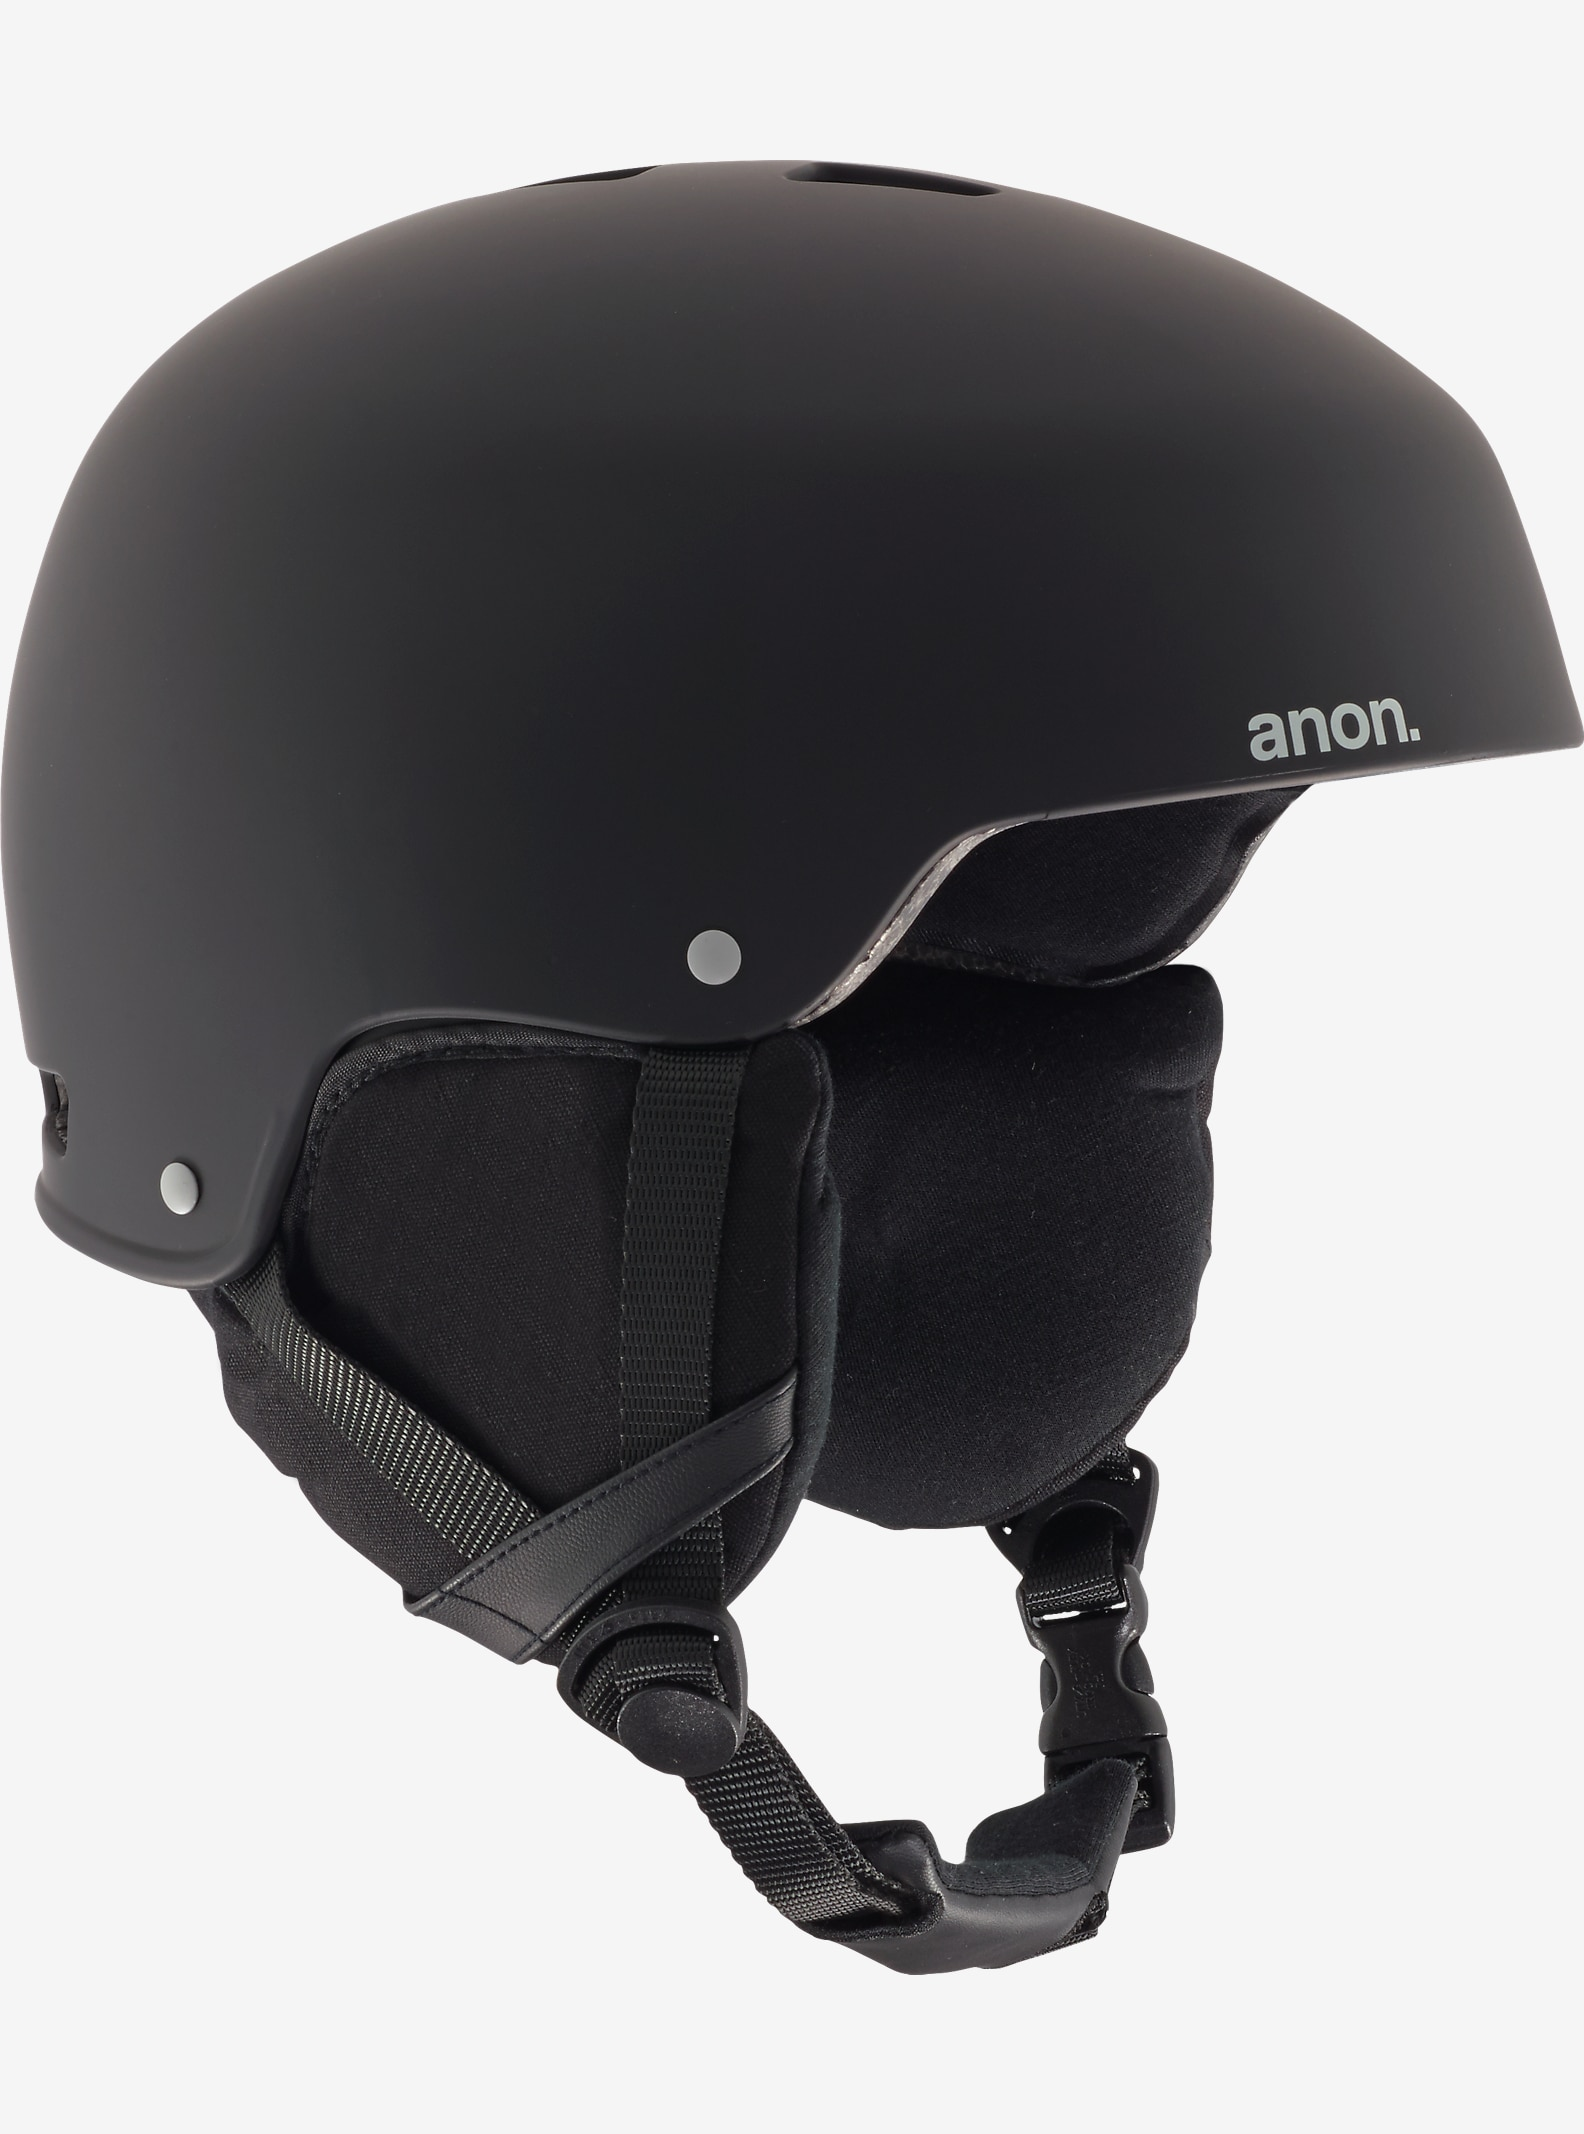 anon. Striker Helm angezeigt in Grunge Black